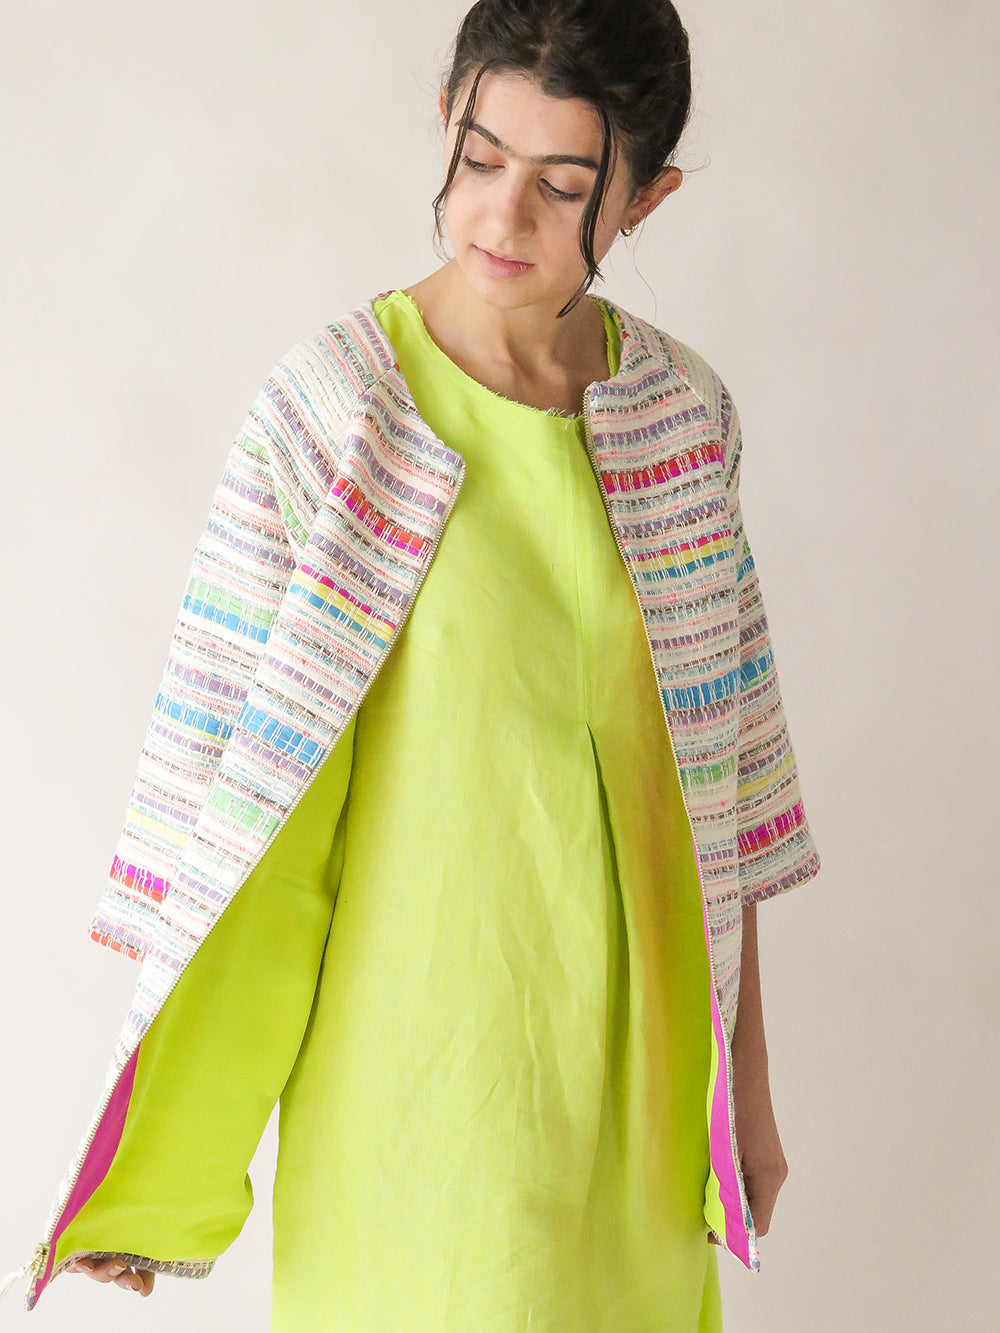 pastis coat in tuloni tapestry